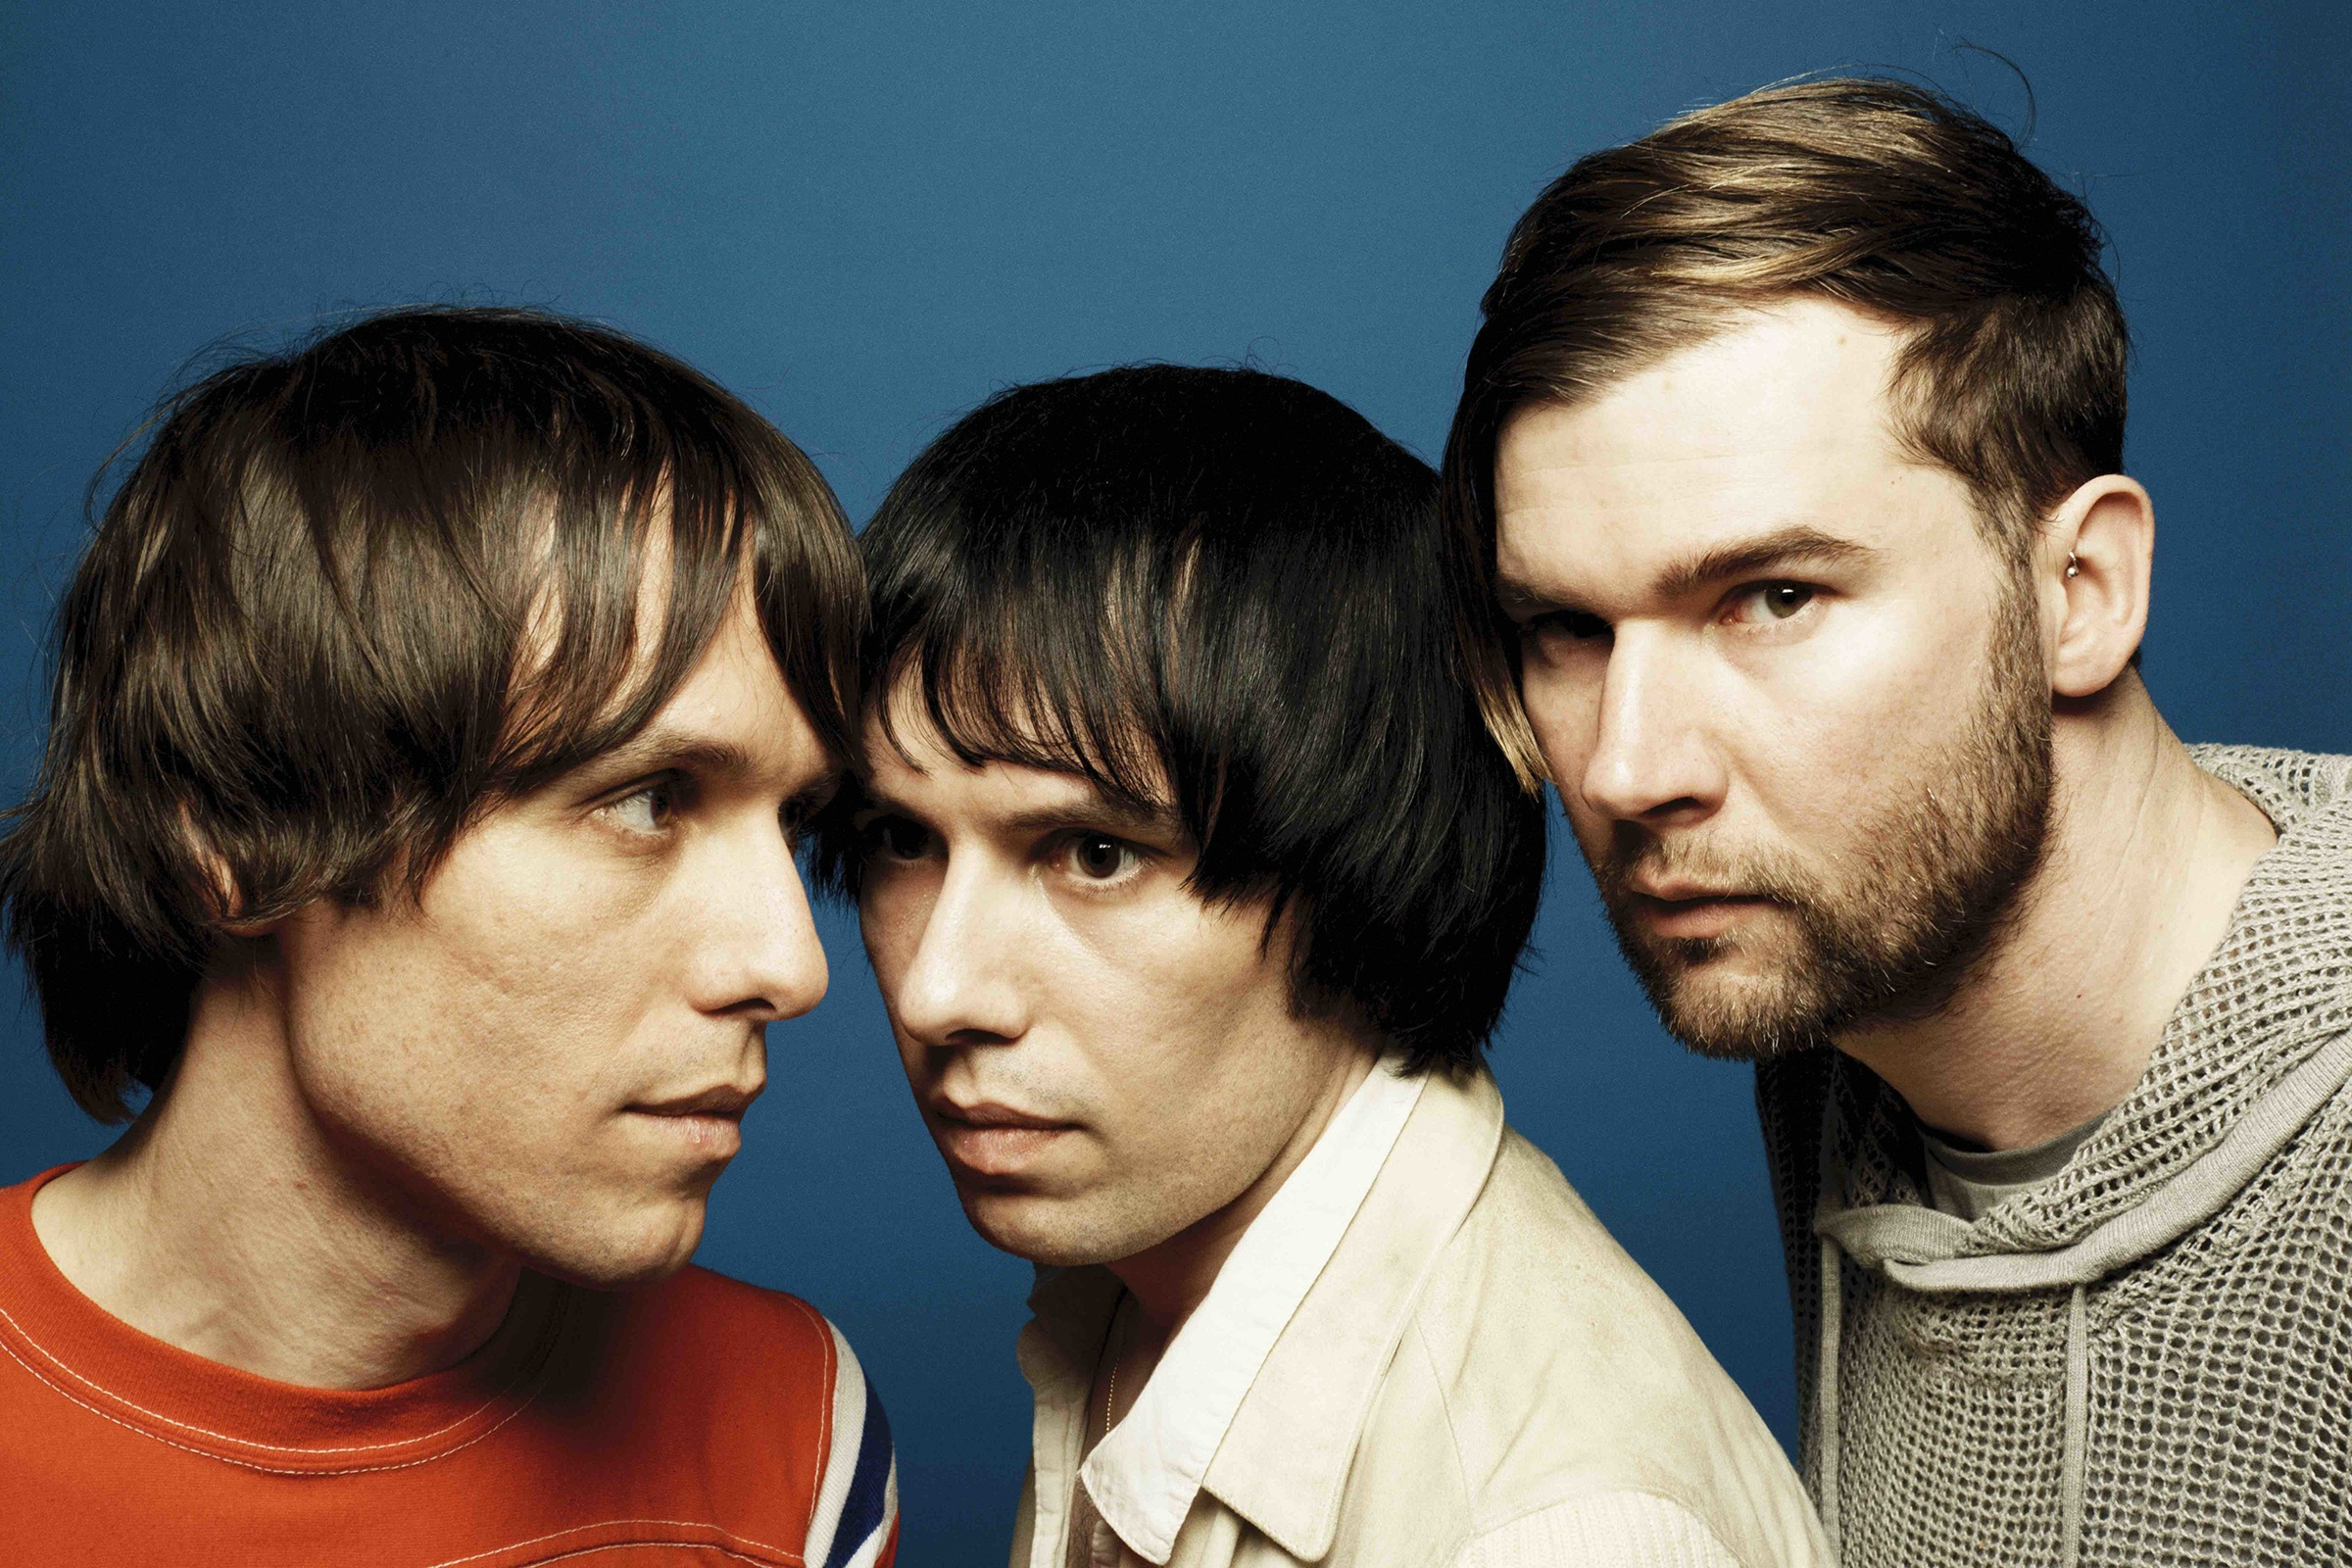 THE CRIBS return with new album, 'Night Network' and share video for lead single 'Running Into You' 1